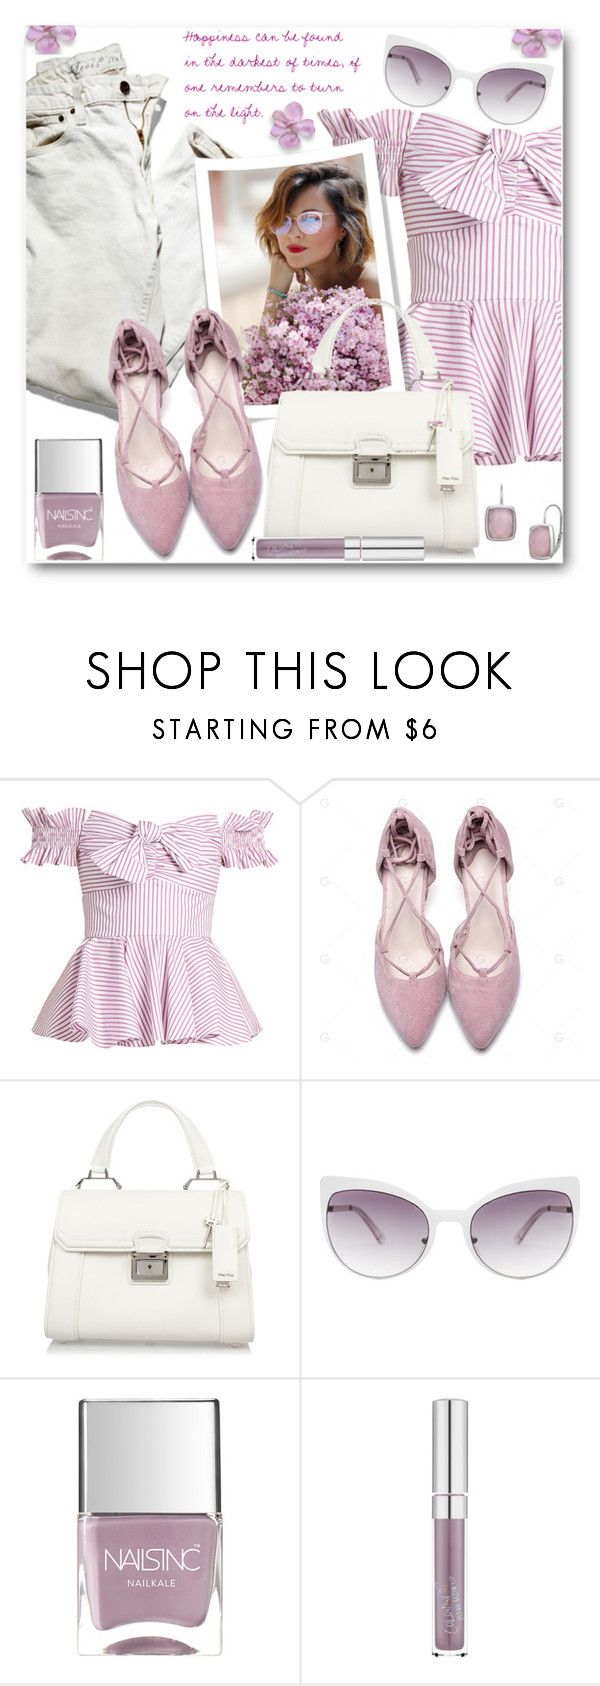 """Happiness Can Be Found in the Darkest of Times!"" by brendariley-1 ❤ liked on Polyvore featuring Caroline Constas, Miu Miu, Skinnydip and Nails Inc."